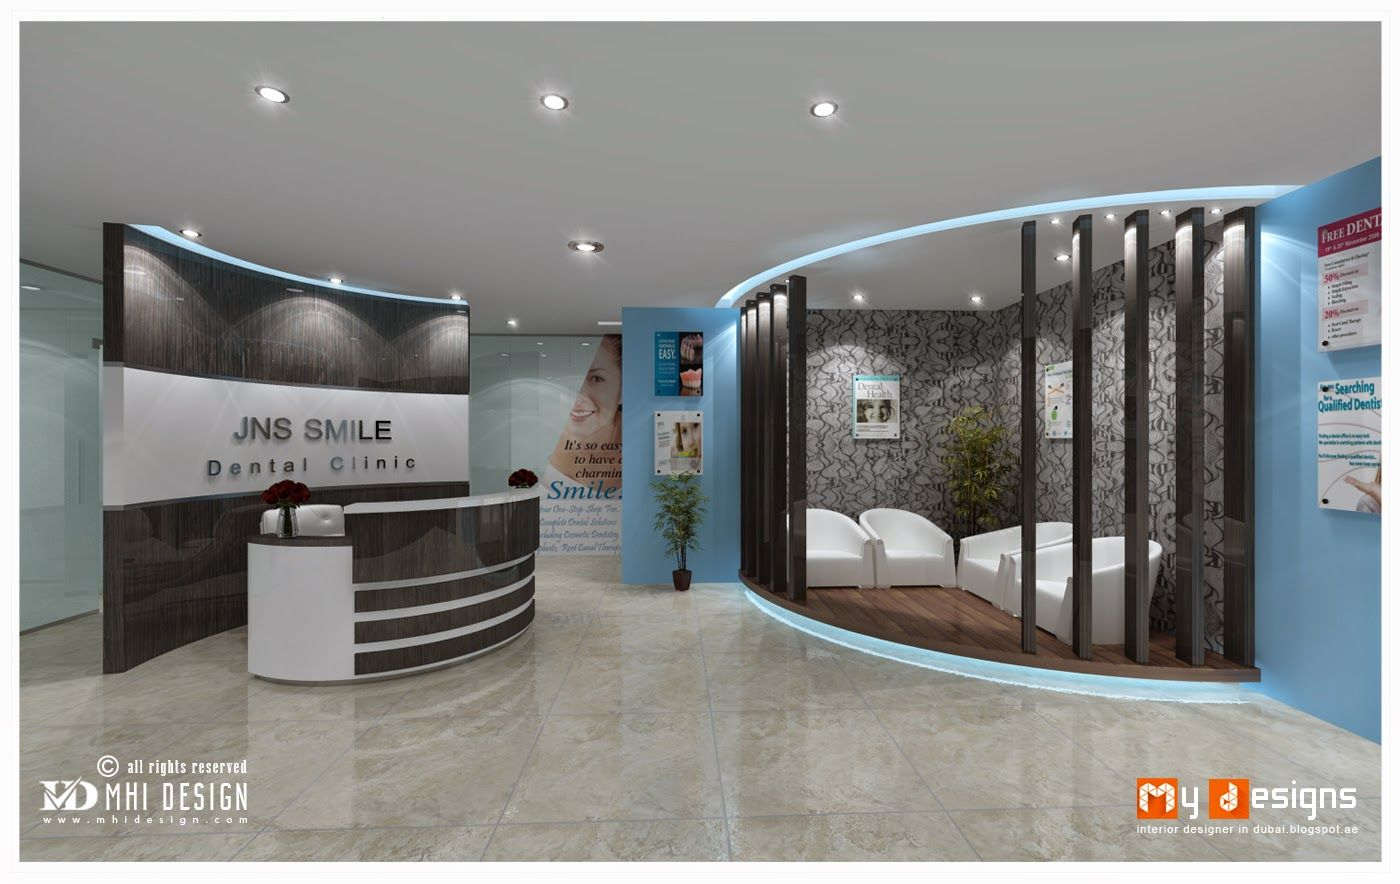 Dubai Dental Clinic Interior Design Proposal For JNS Smile One Of Office